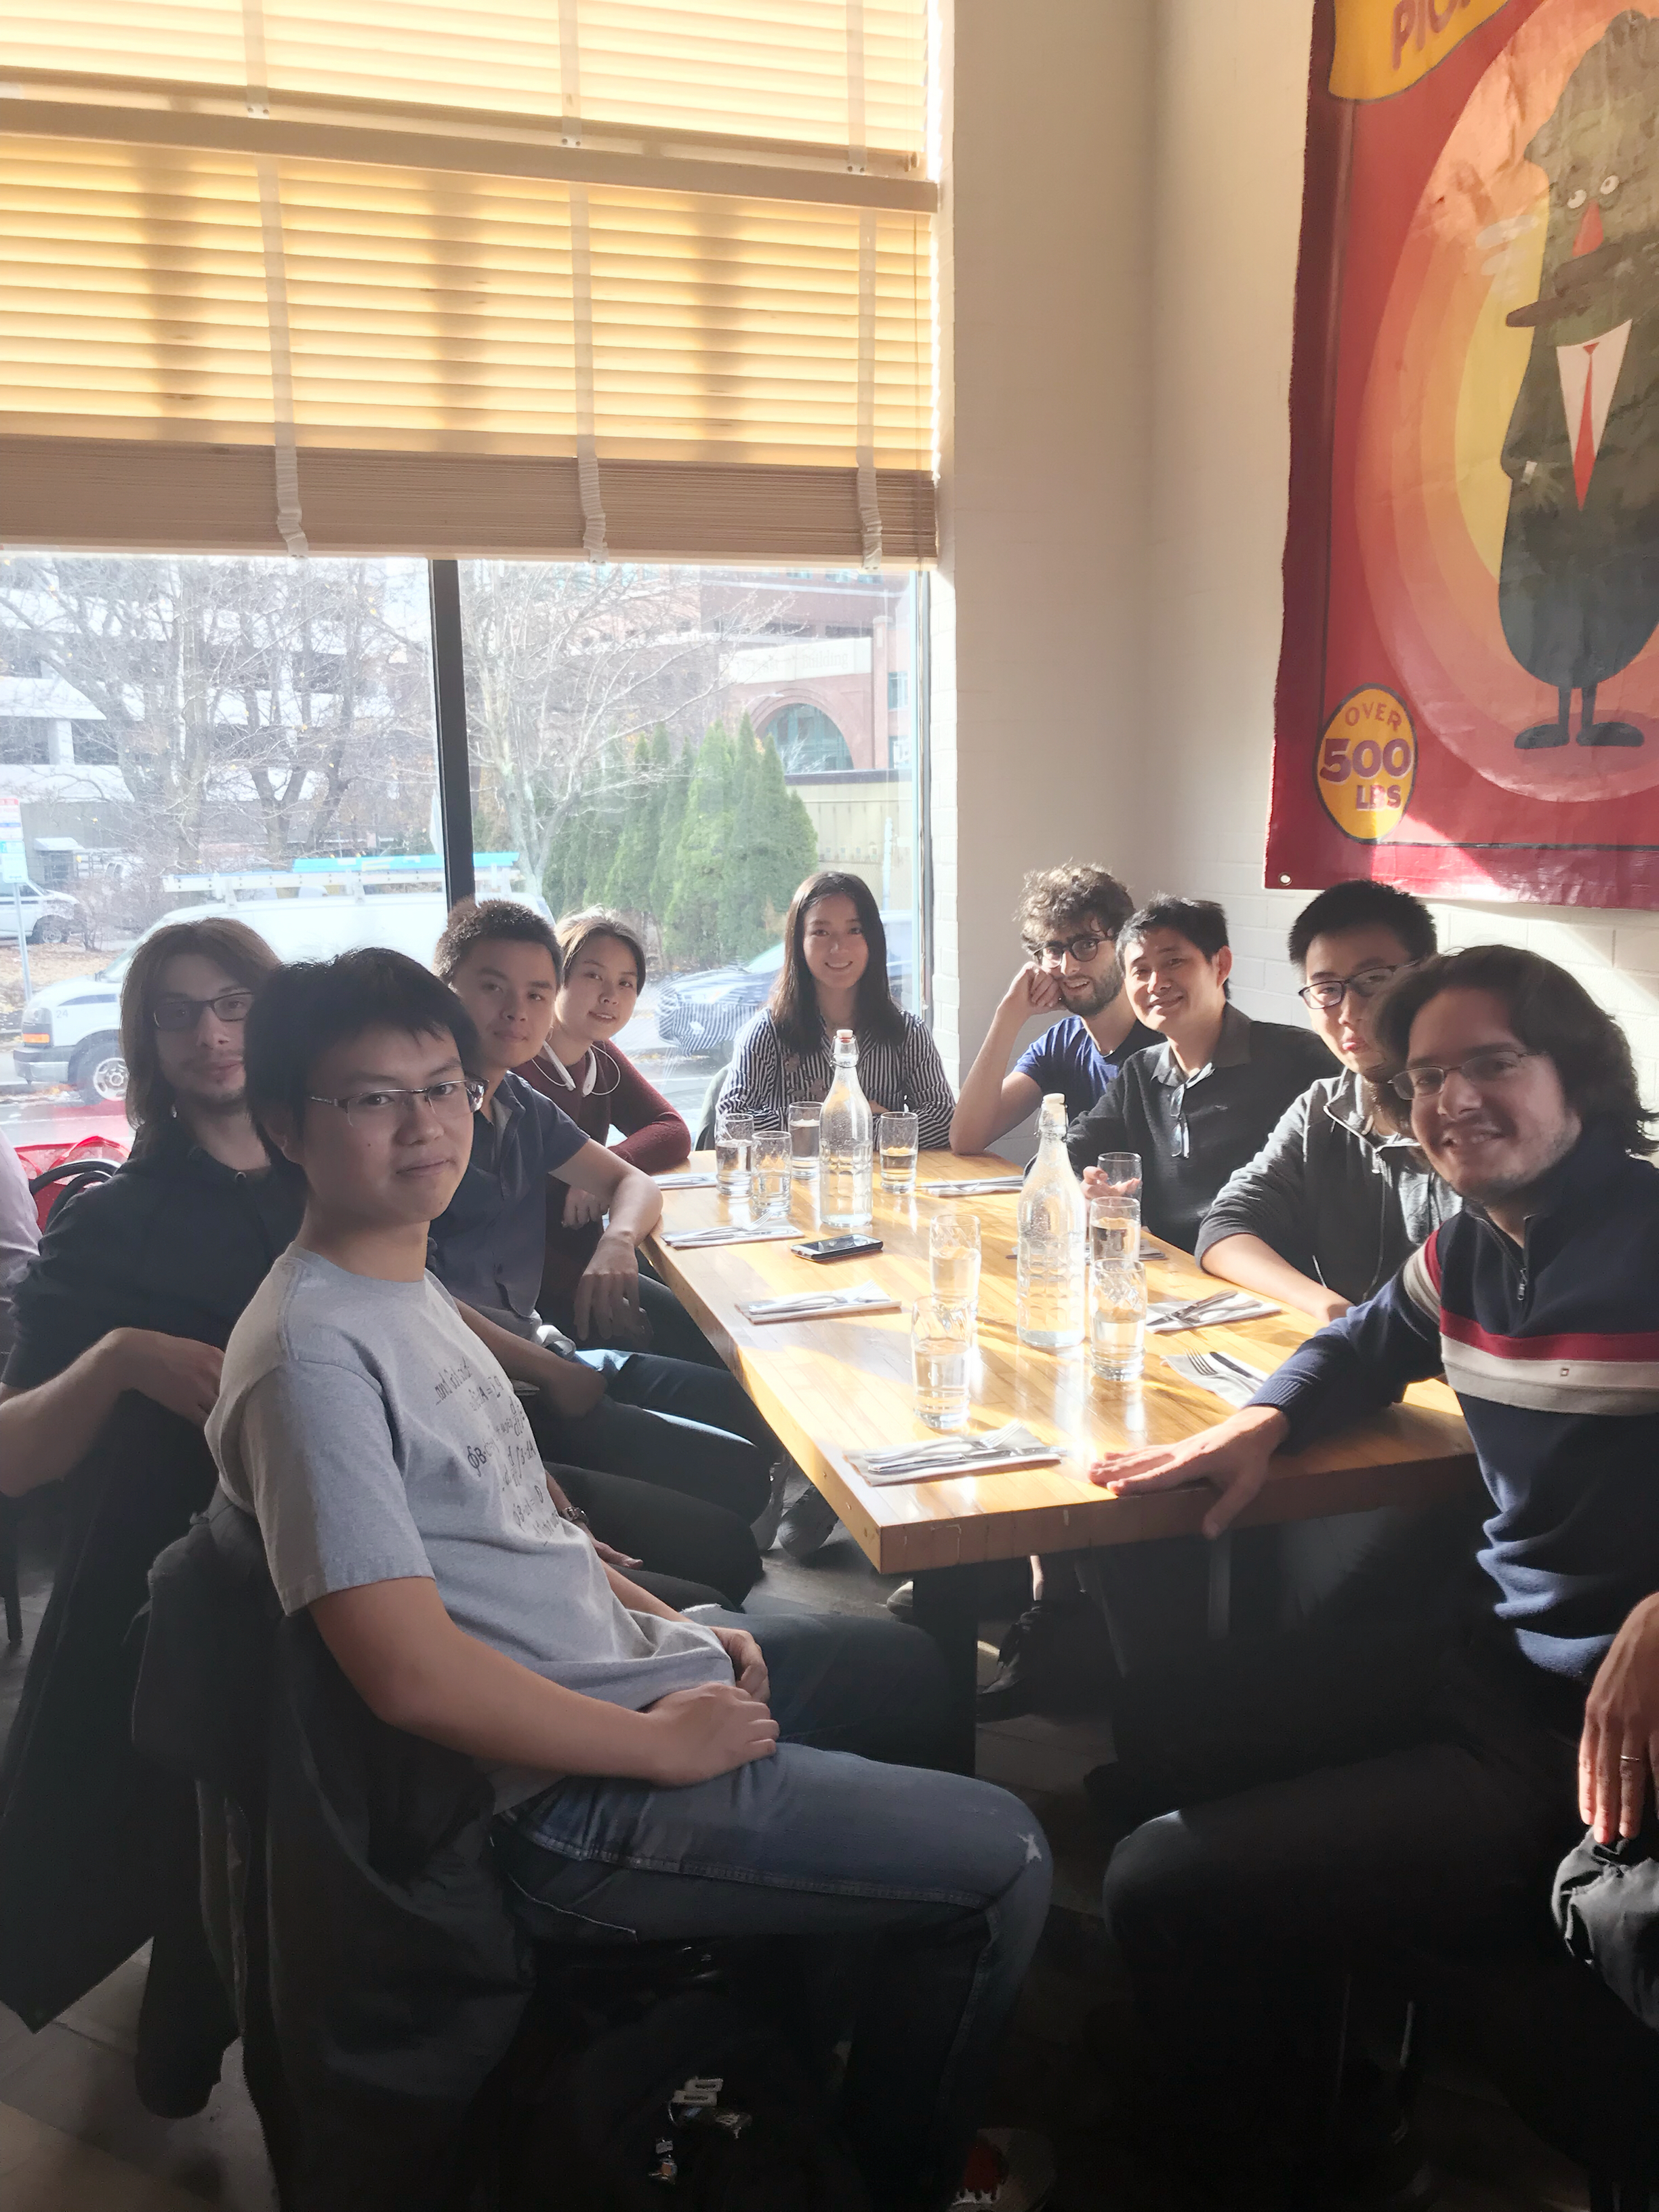 Group lunch at Mamaleh's